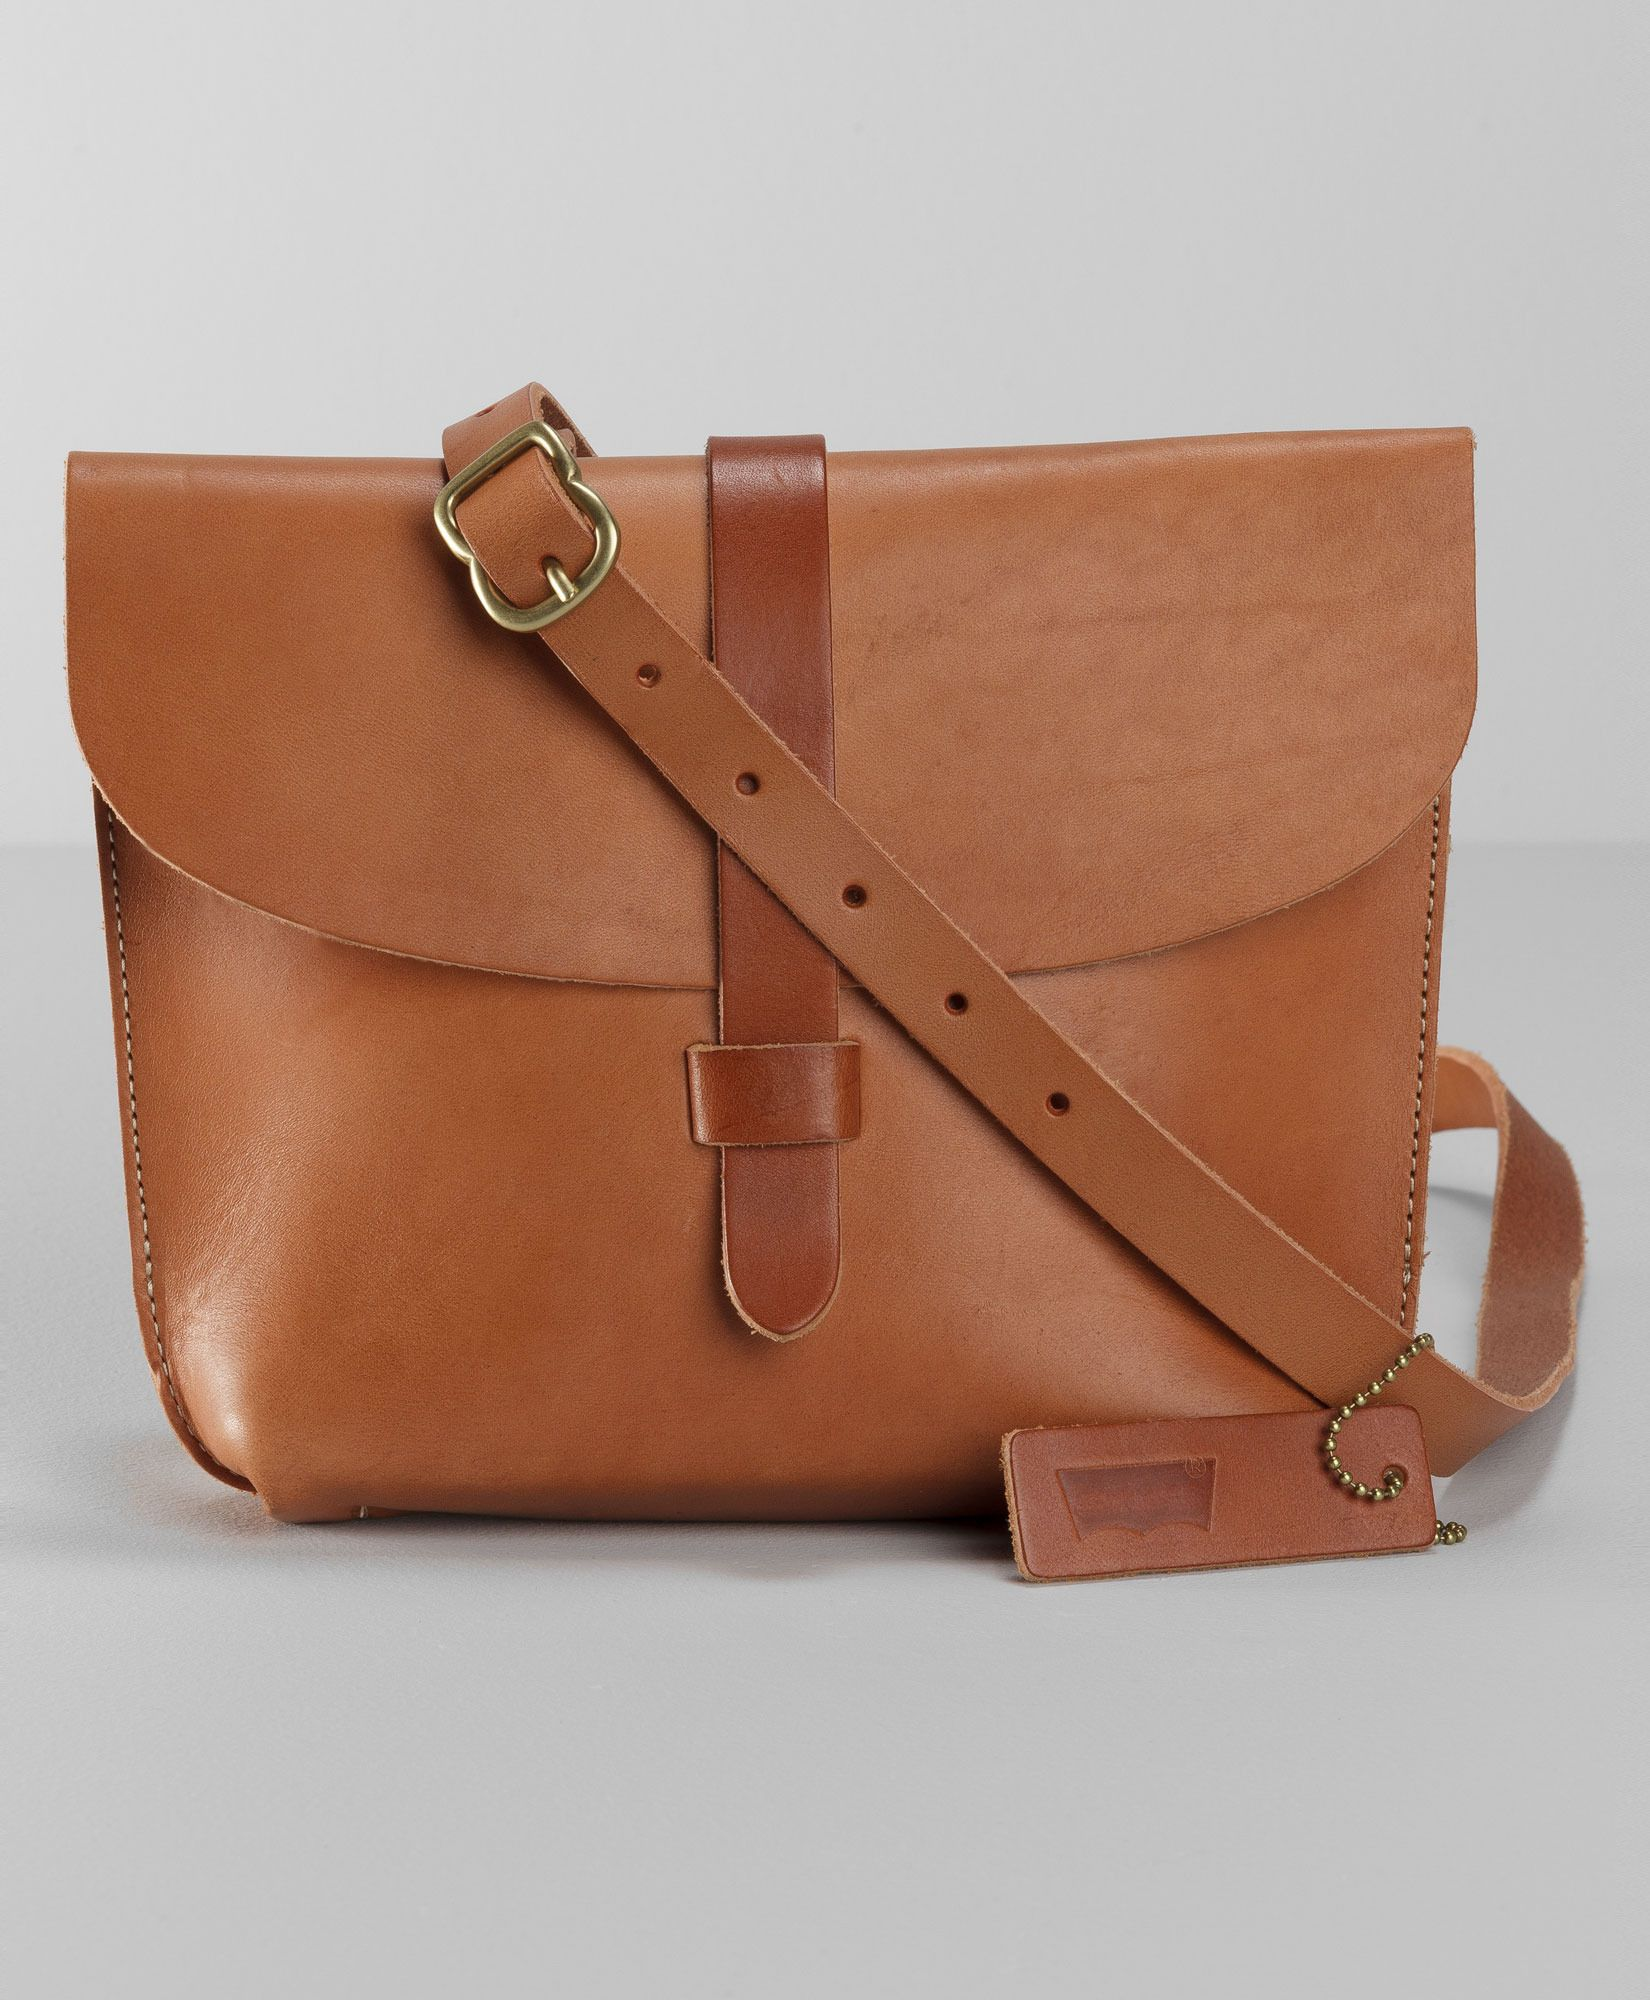 5c6cbf8849cf6 Levi s Crafted Leather Saddle Bag - Camel - Bags   Wallets ...